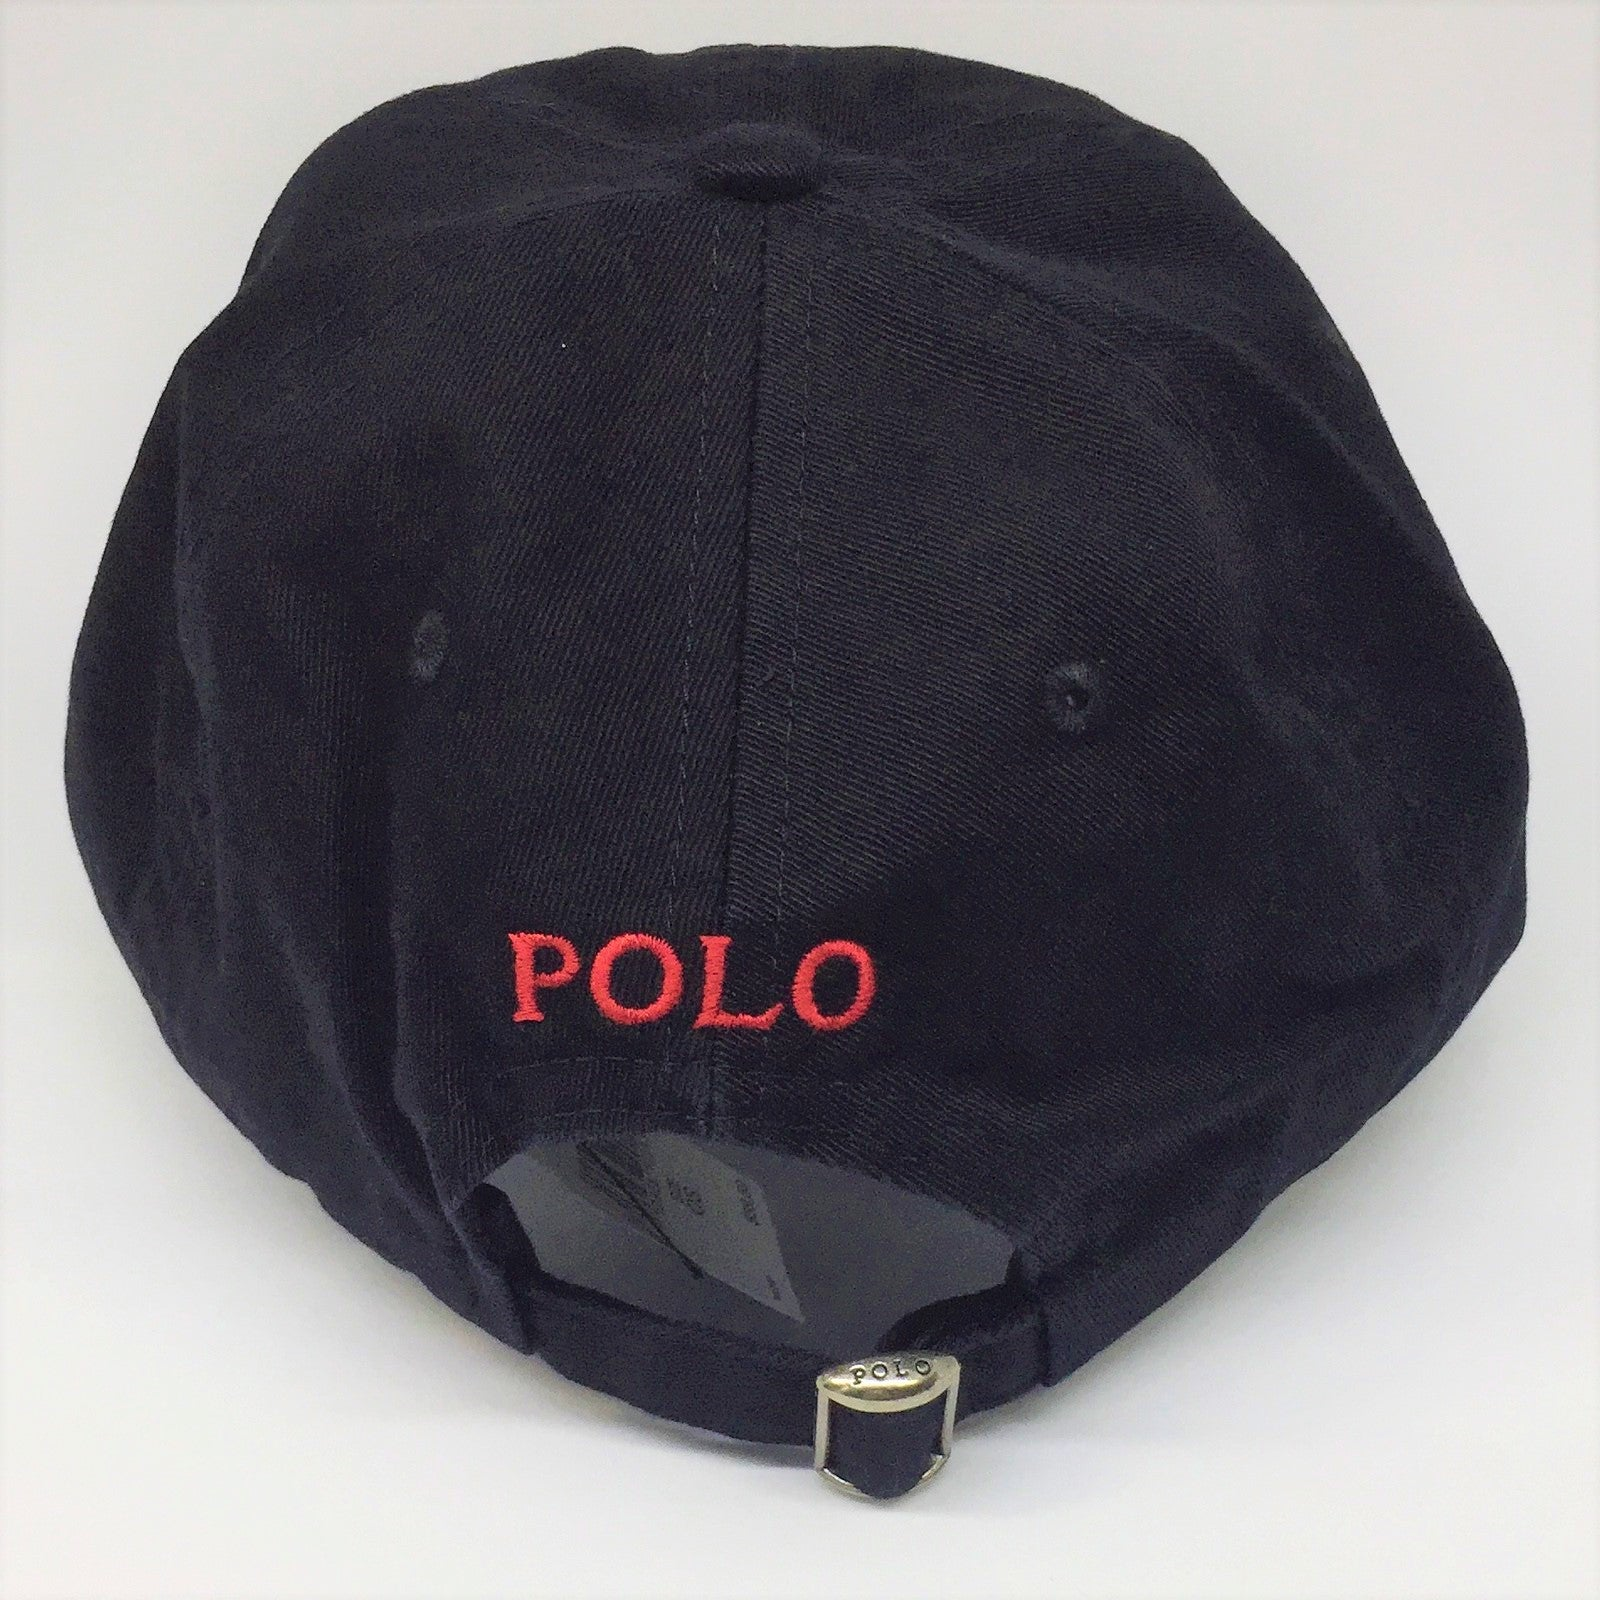 017de180b15 Polo Ralph Lauren Baseball Cap Black with Red Pony - Style Up